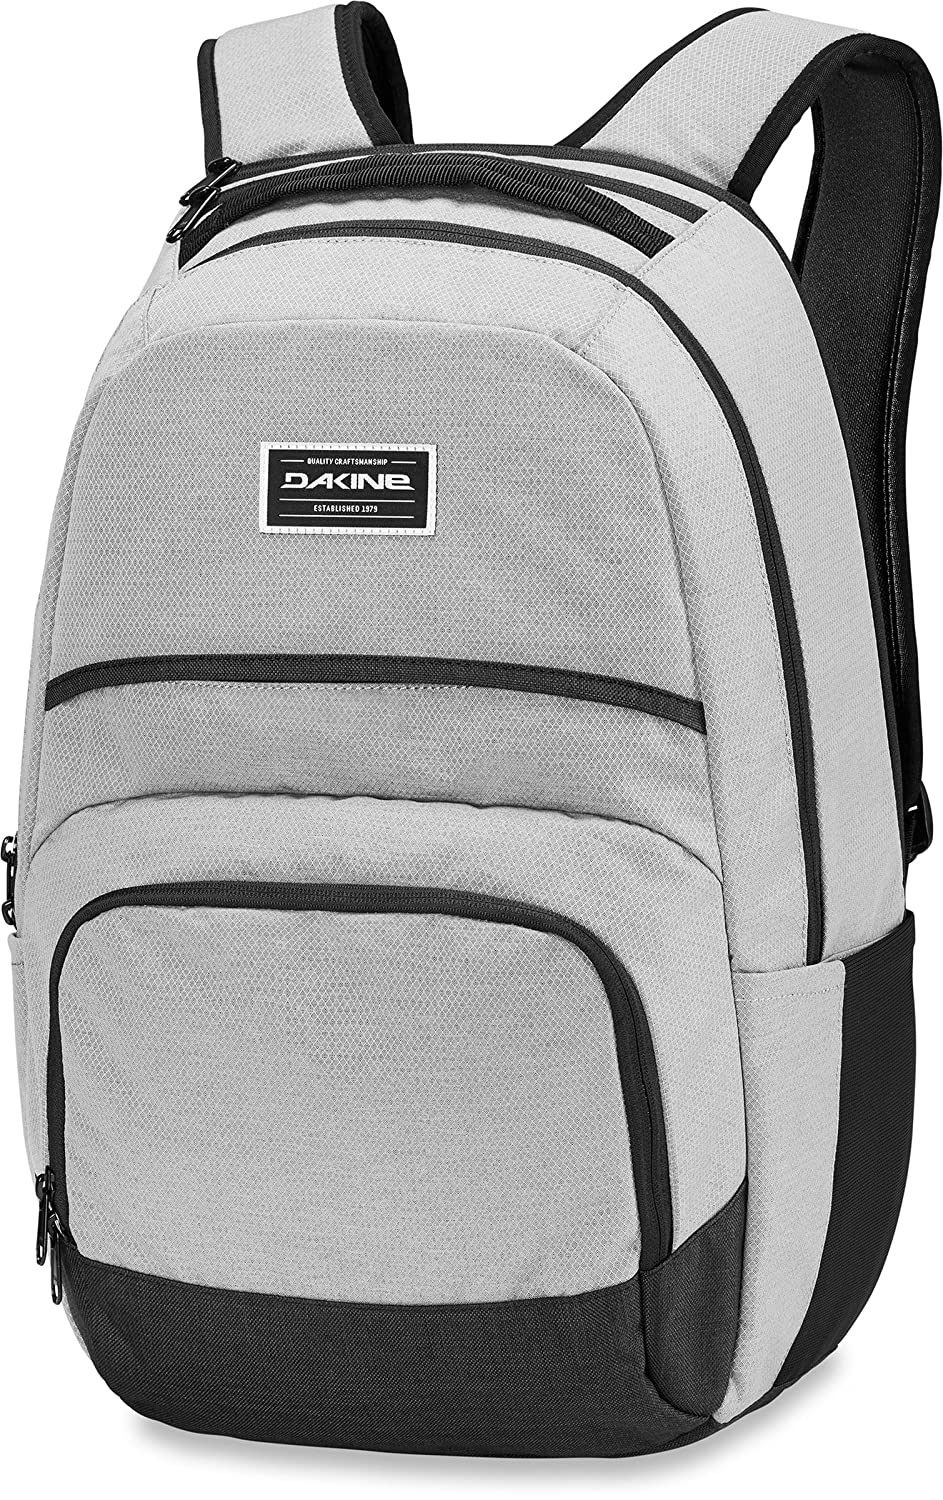 05ac489ed5049 Dakine Mens Campus DLX Backpack